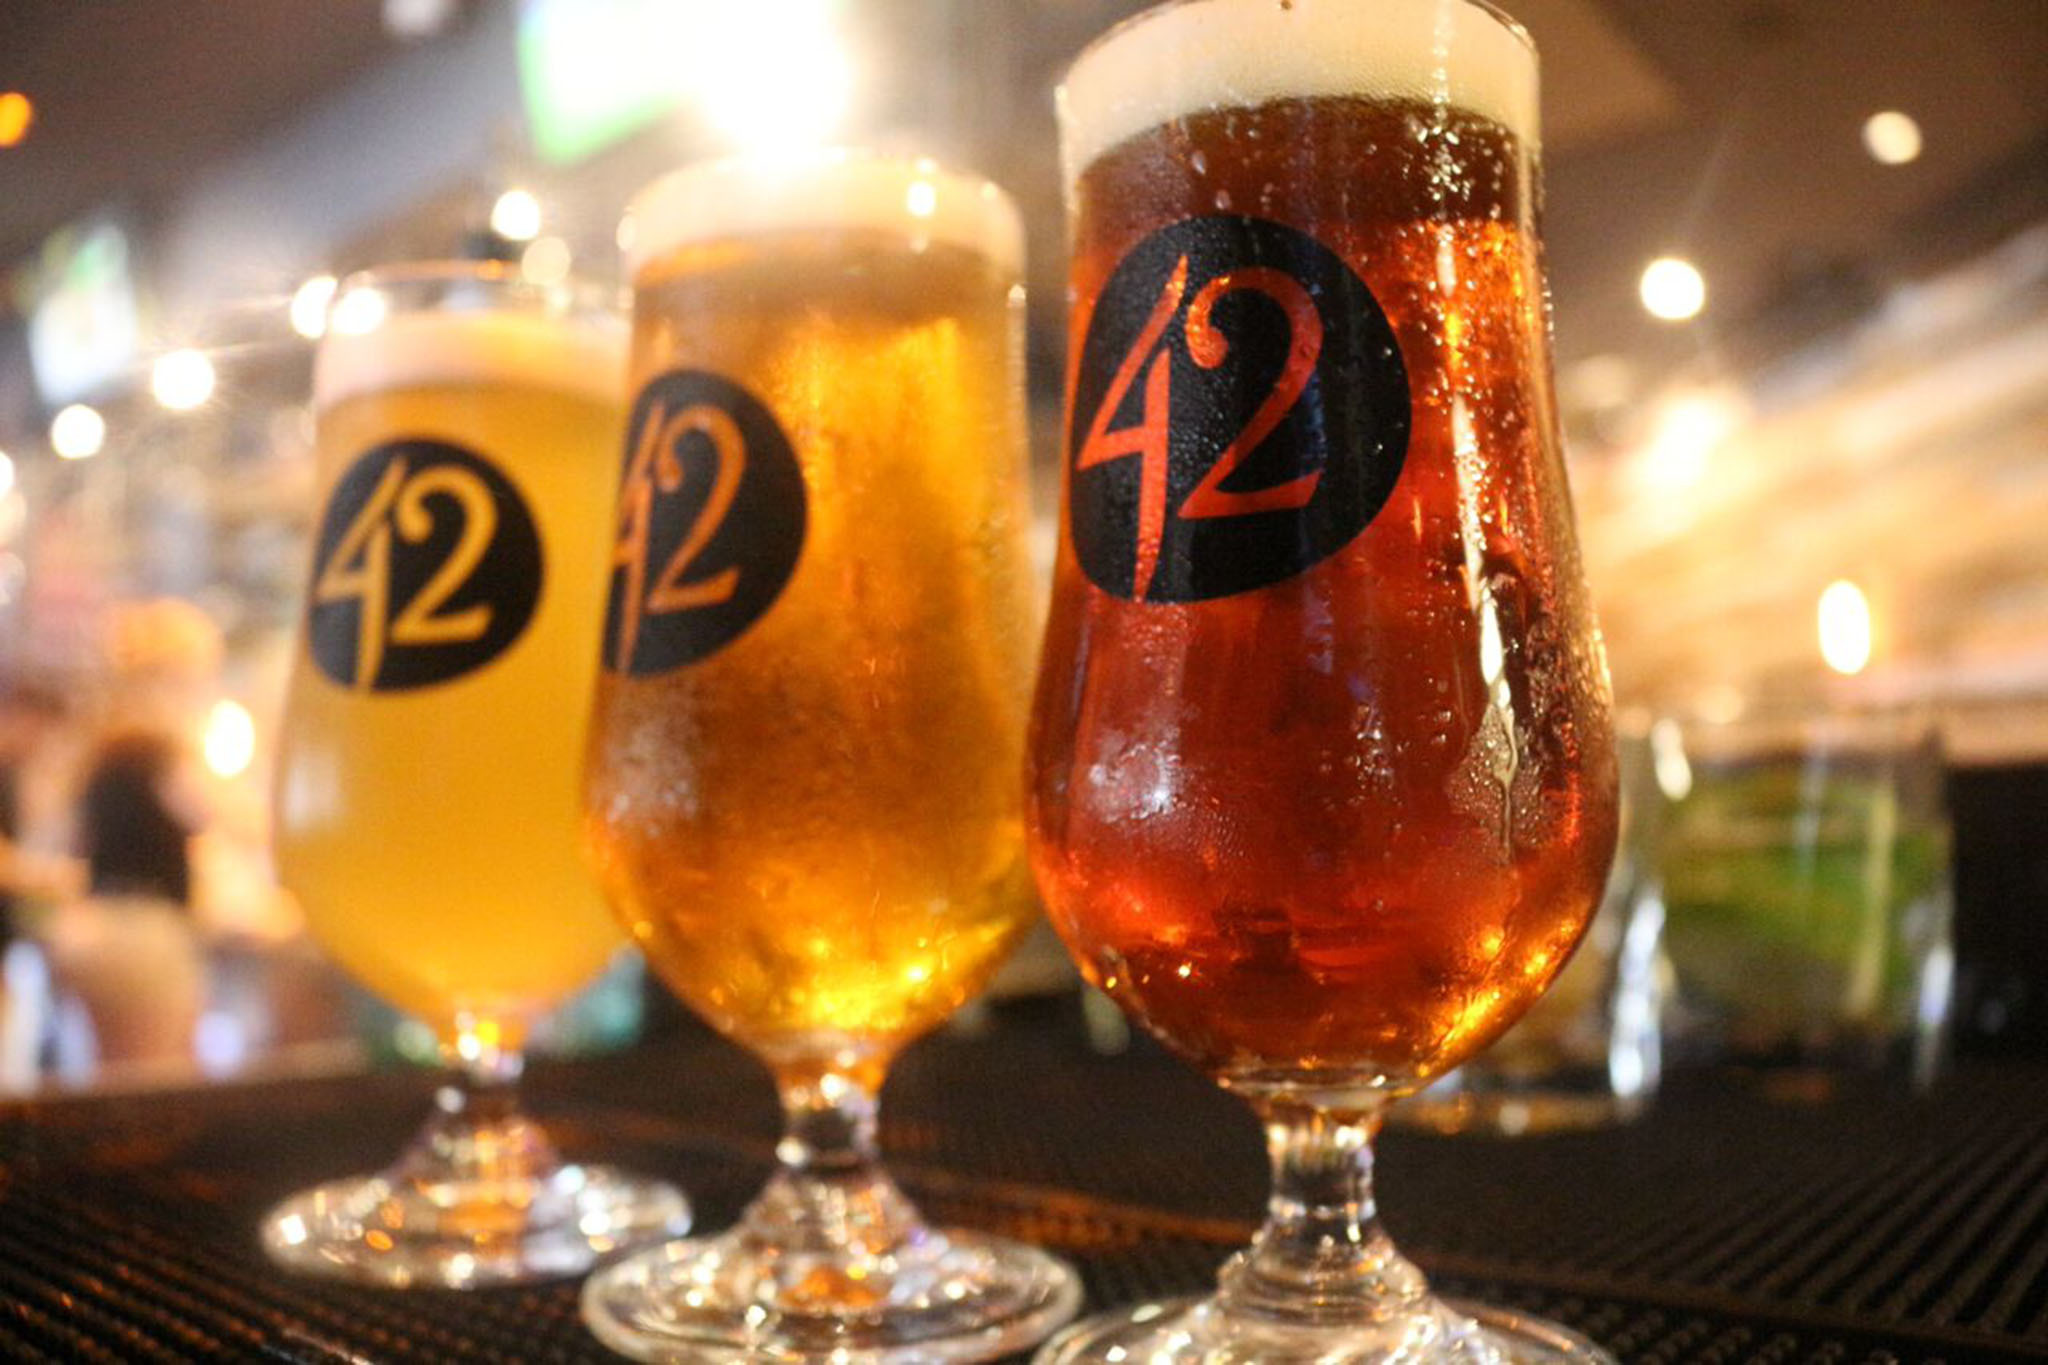 Check out the best craft beer bars in Miami